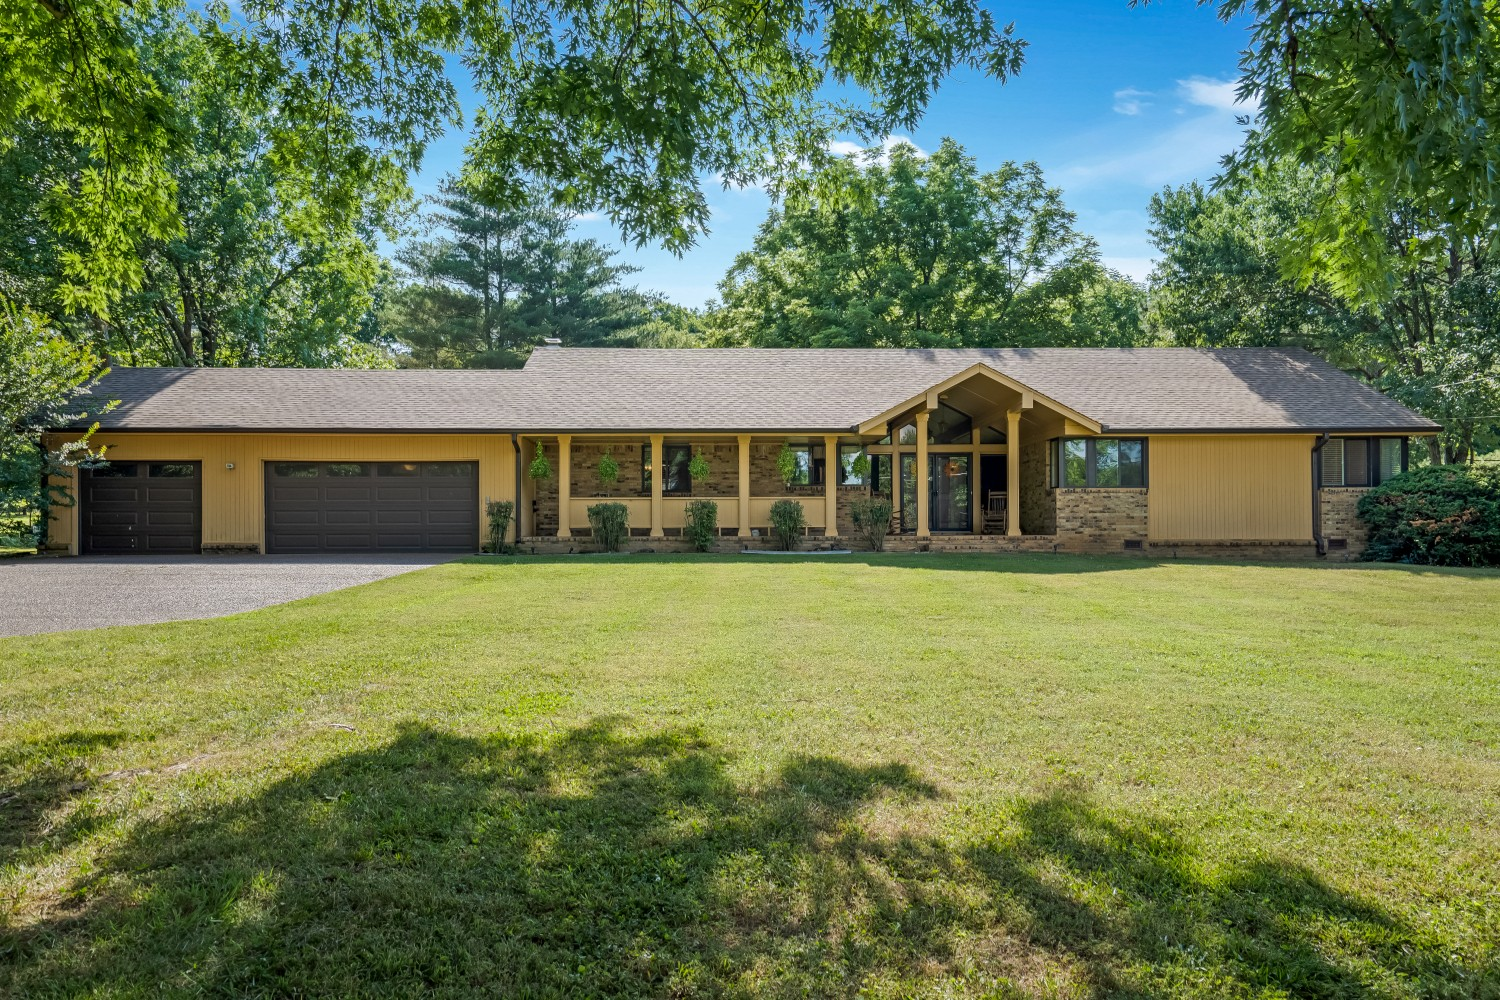 127 Suncrest Dr Property Photo - LA VERGNE, TN real estate listing